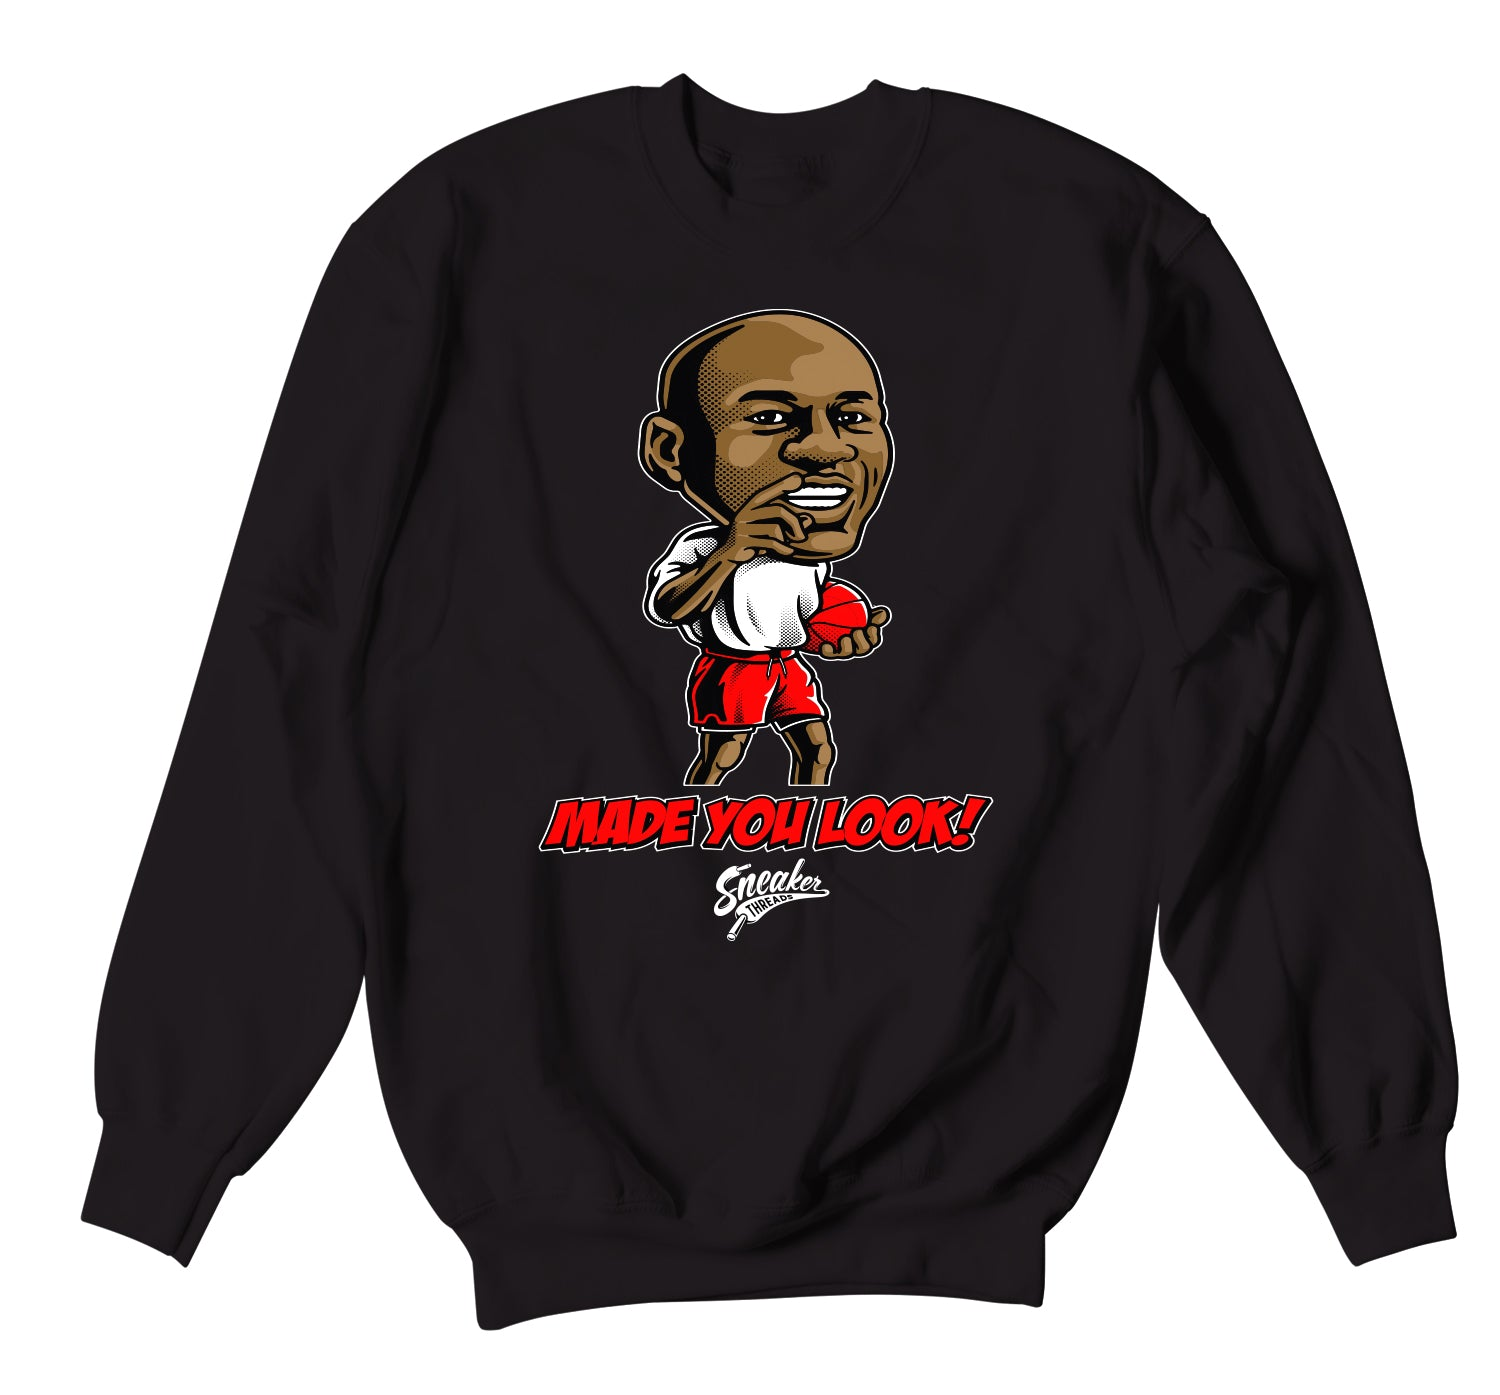 sweater designed to match the Jordan 4 fire red sneaker collection